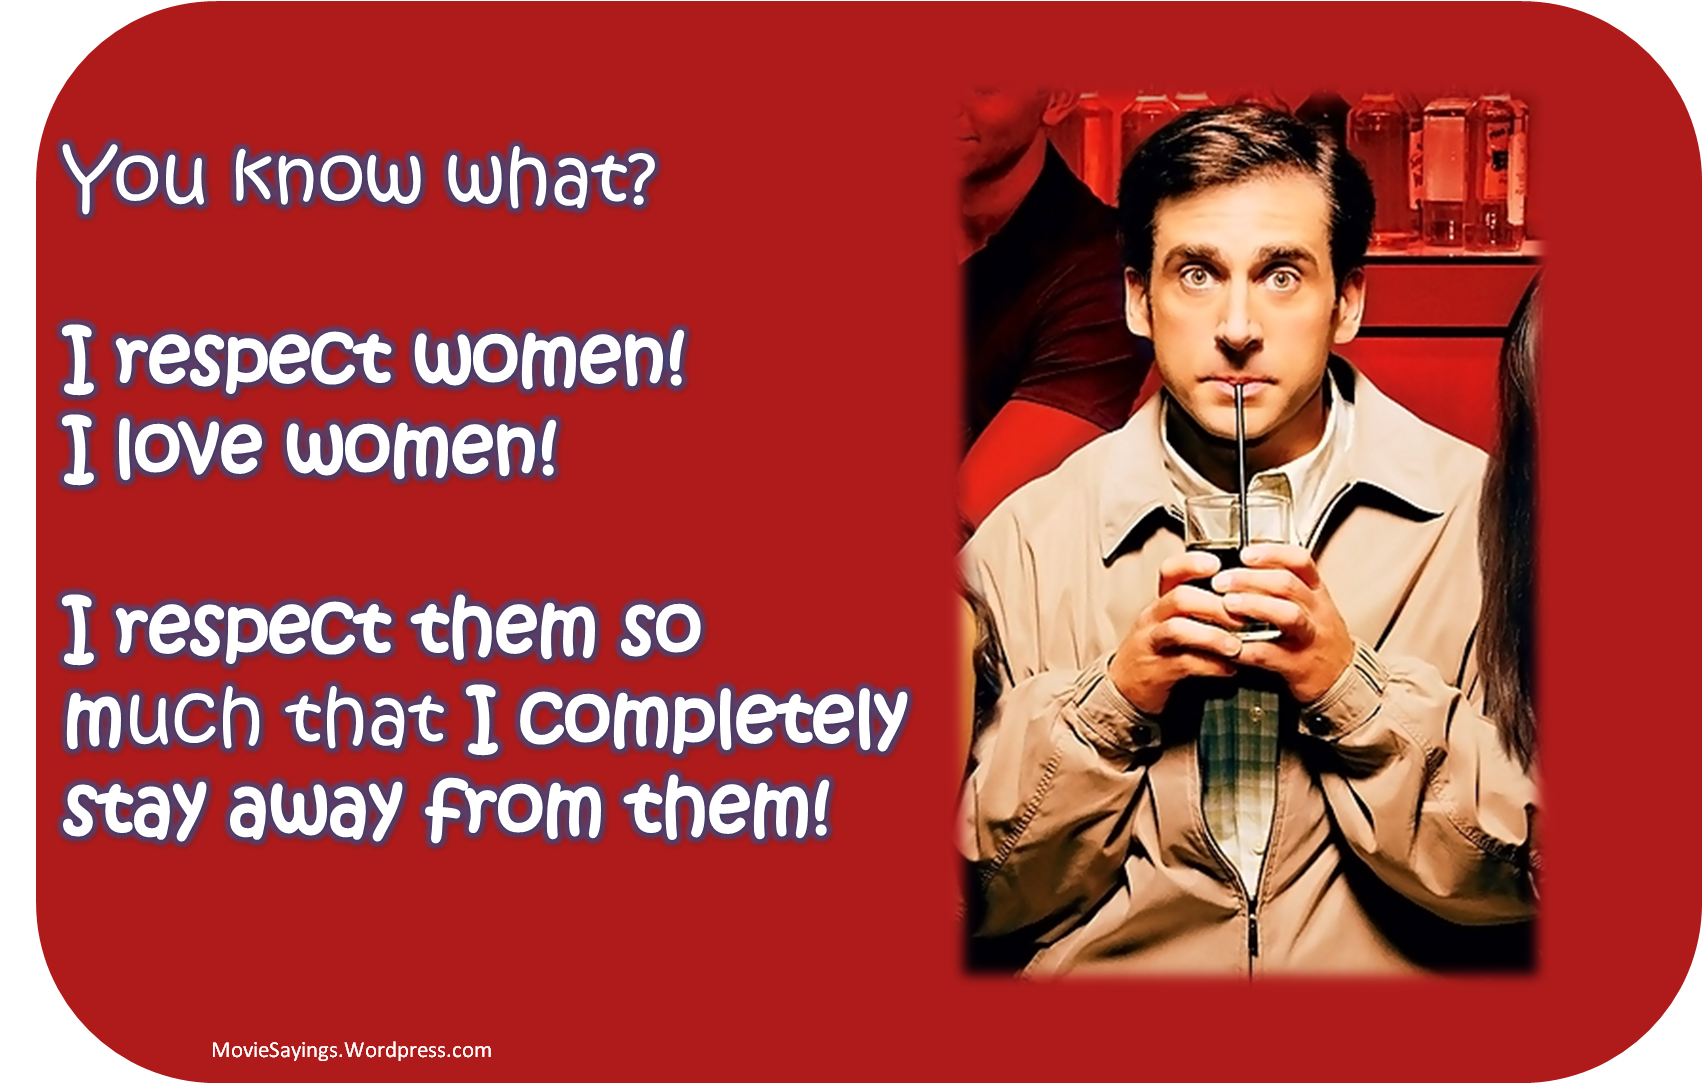 Steve Carell The 40 Year Old Virgin Movie Sayings